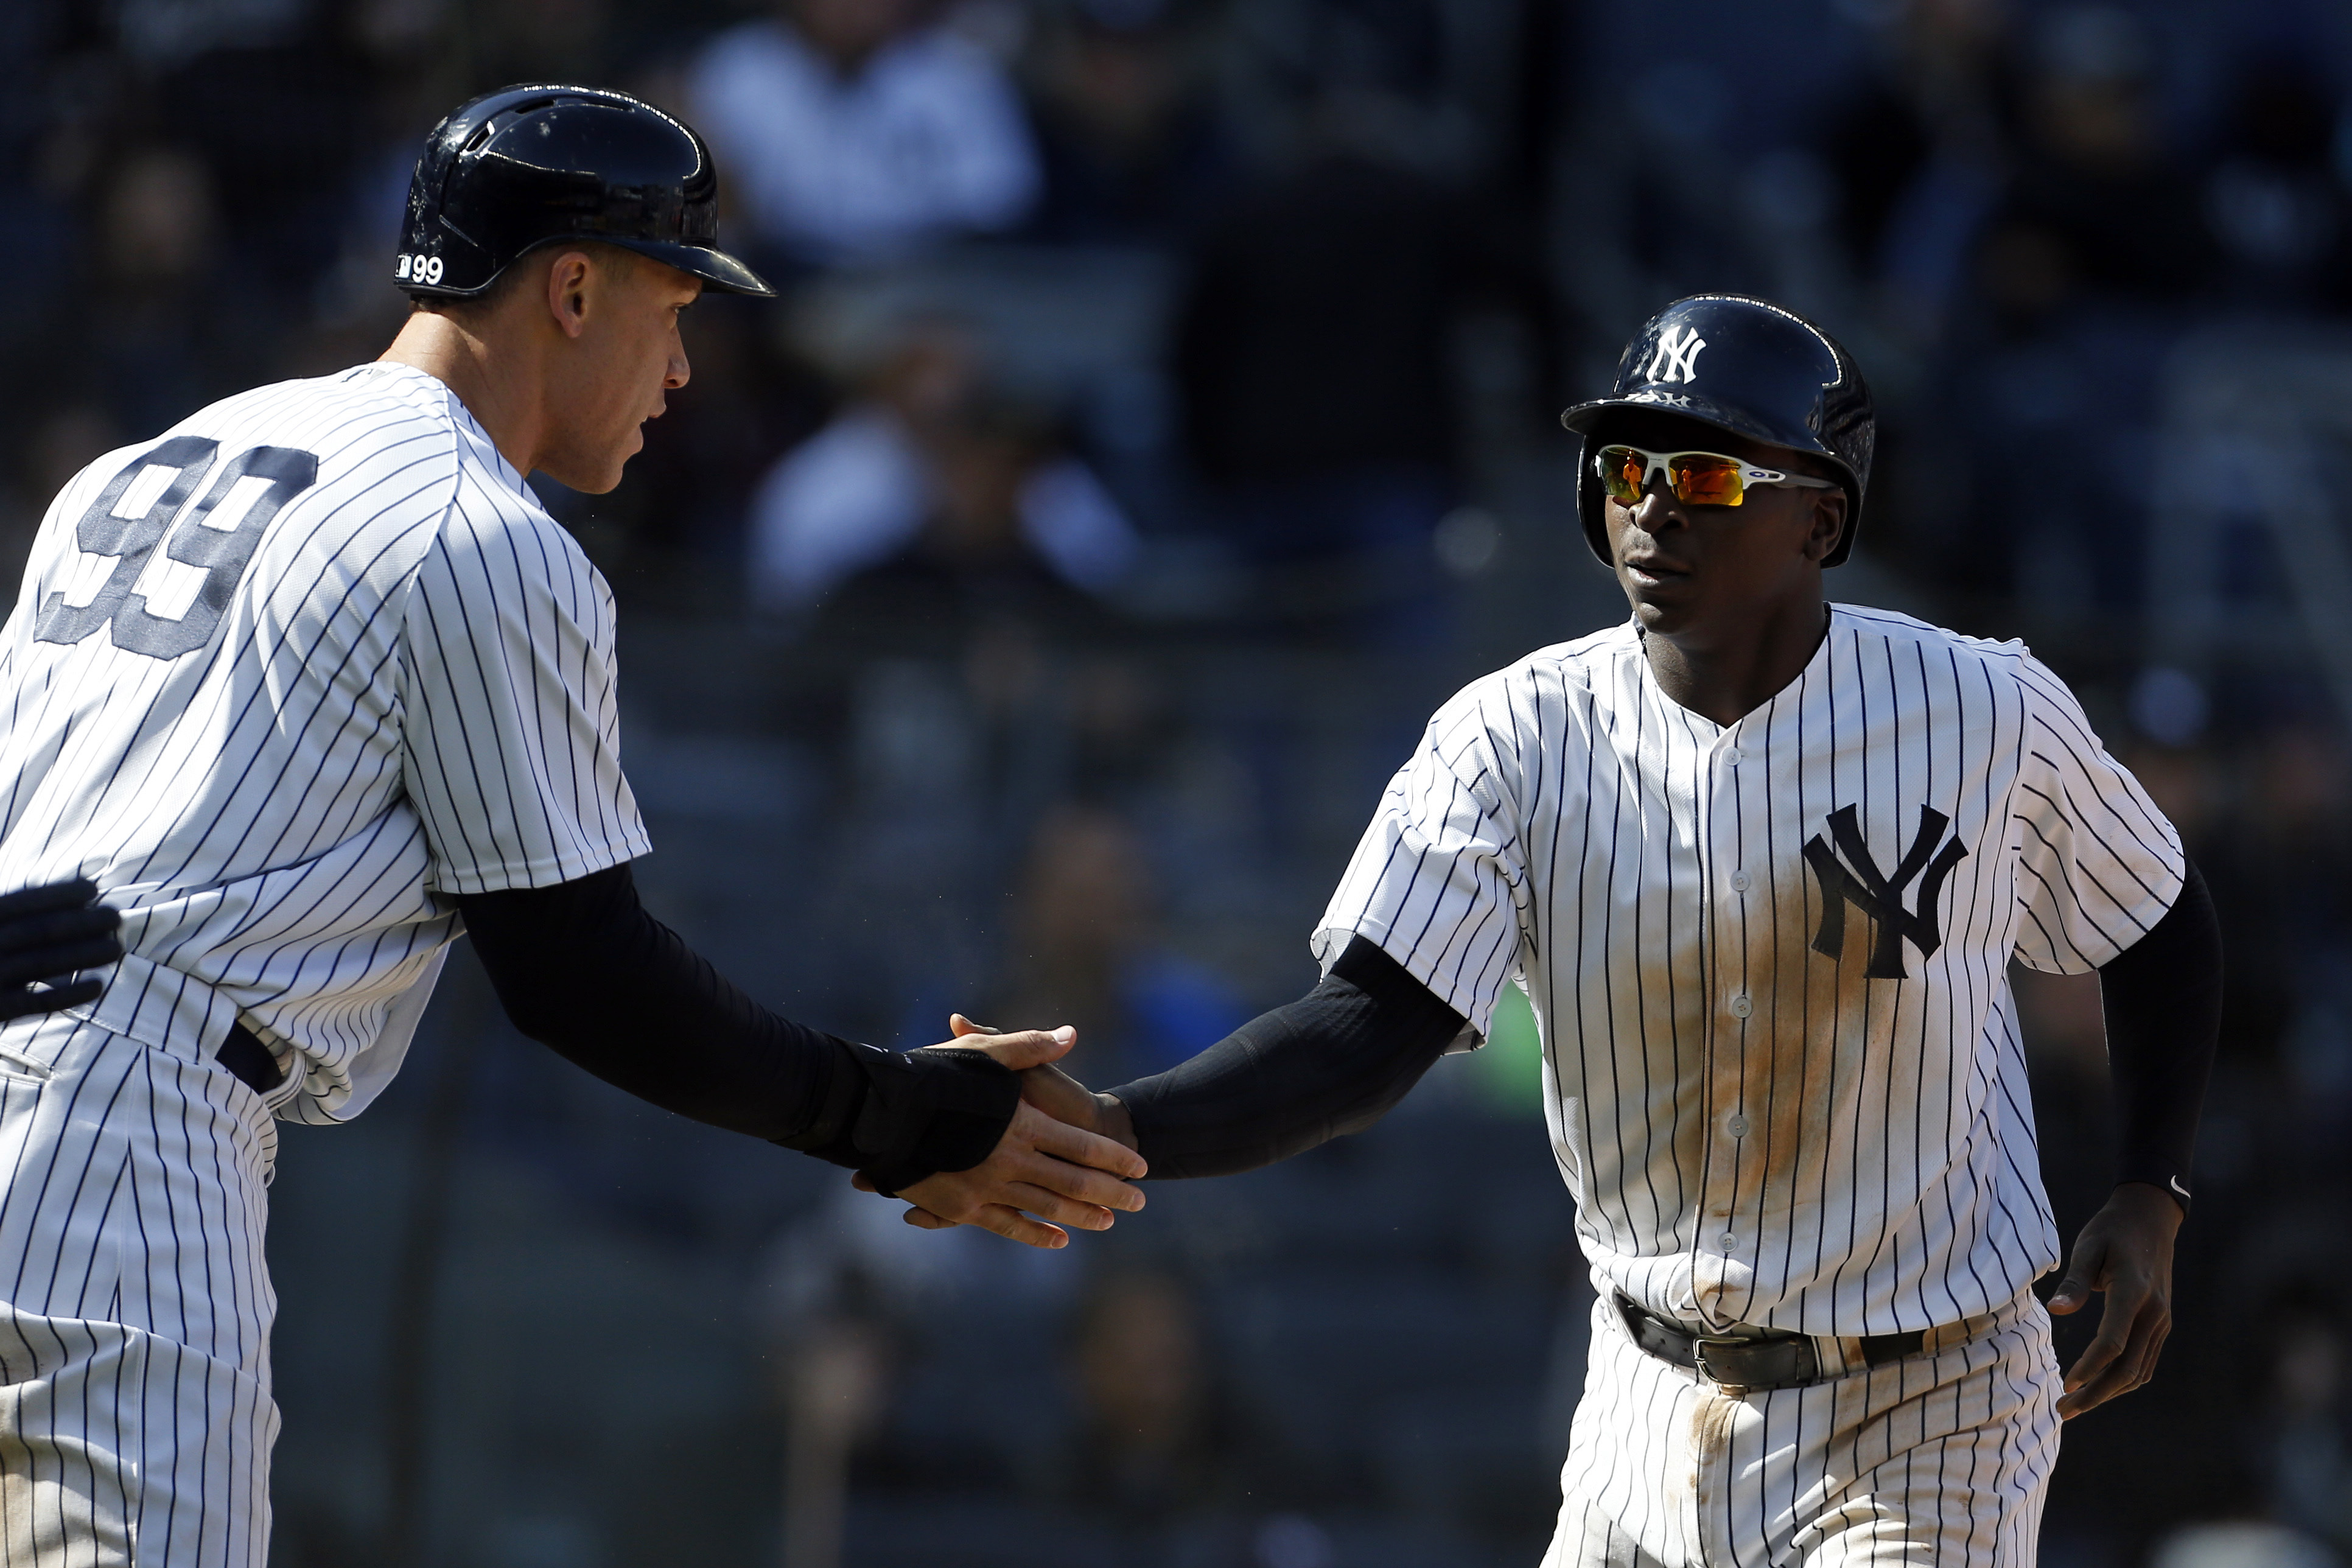 Can Didi Gregorius Keep This Up?